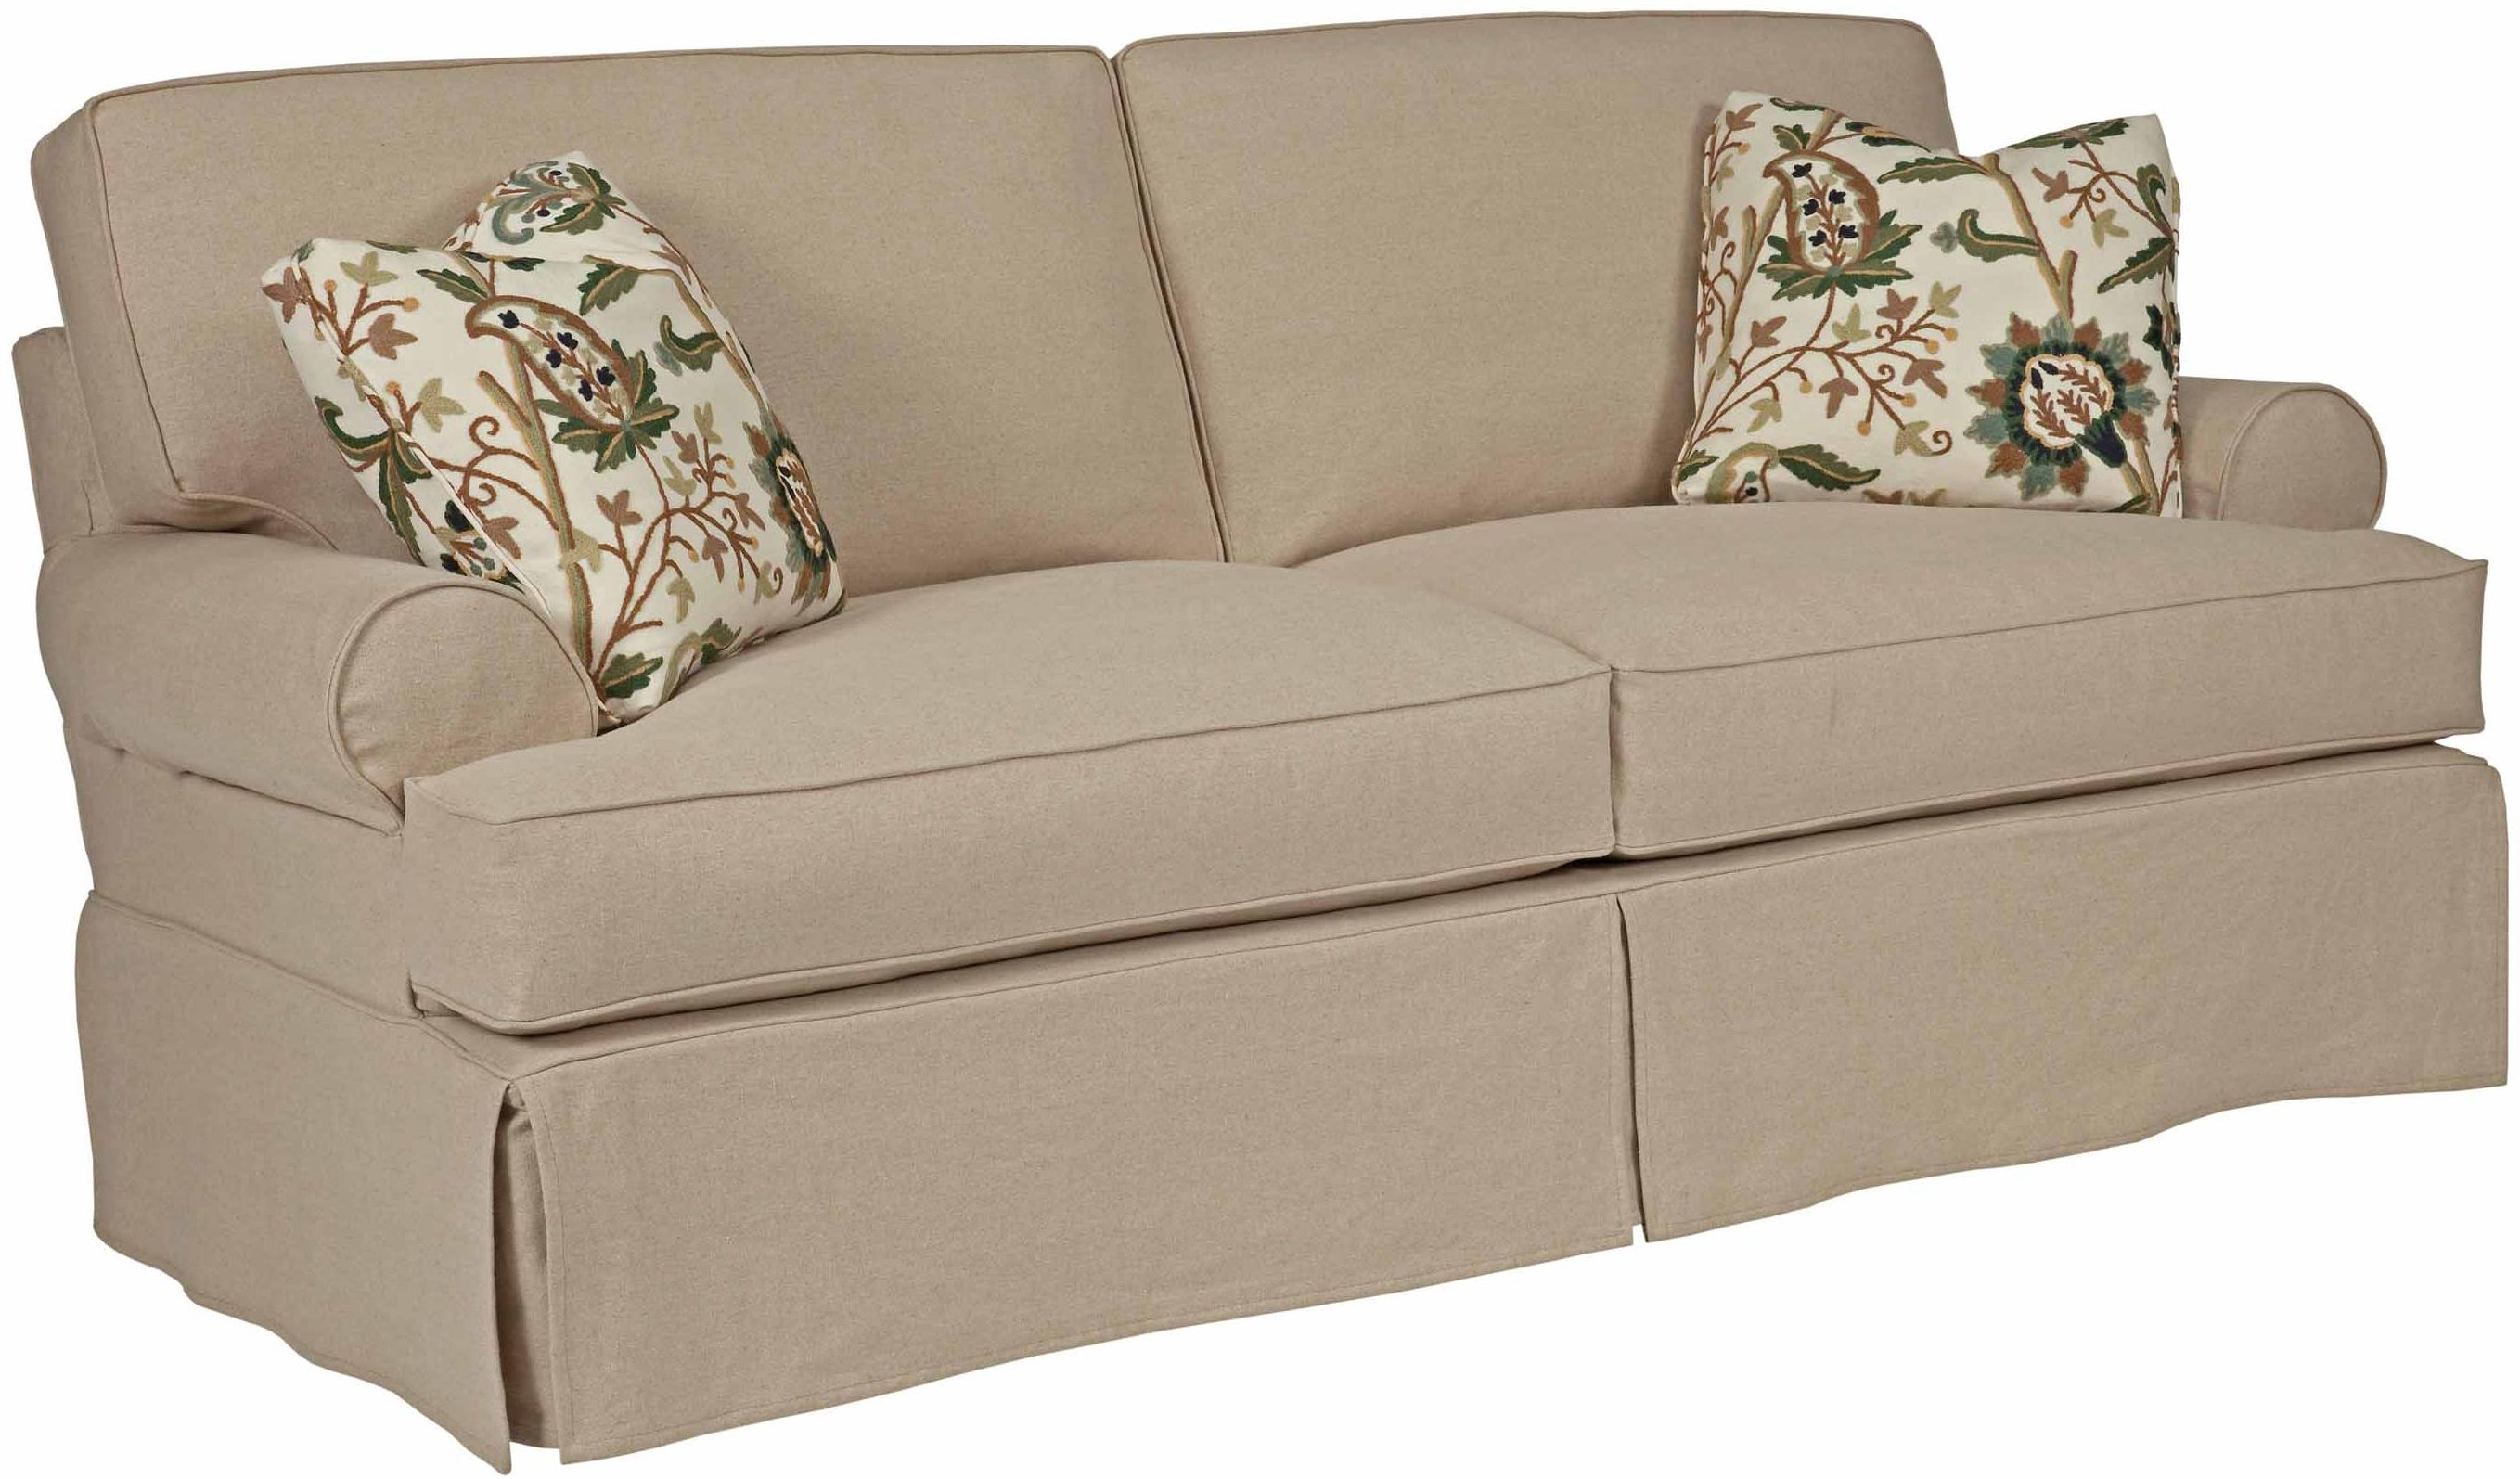 Furniture Creates Clean Foundation That Complements Decorating With Slipcovers For Sofas And Chairs (Photo 13 of 15)